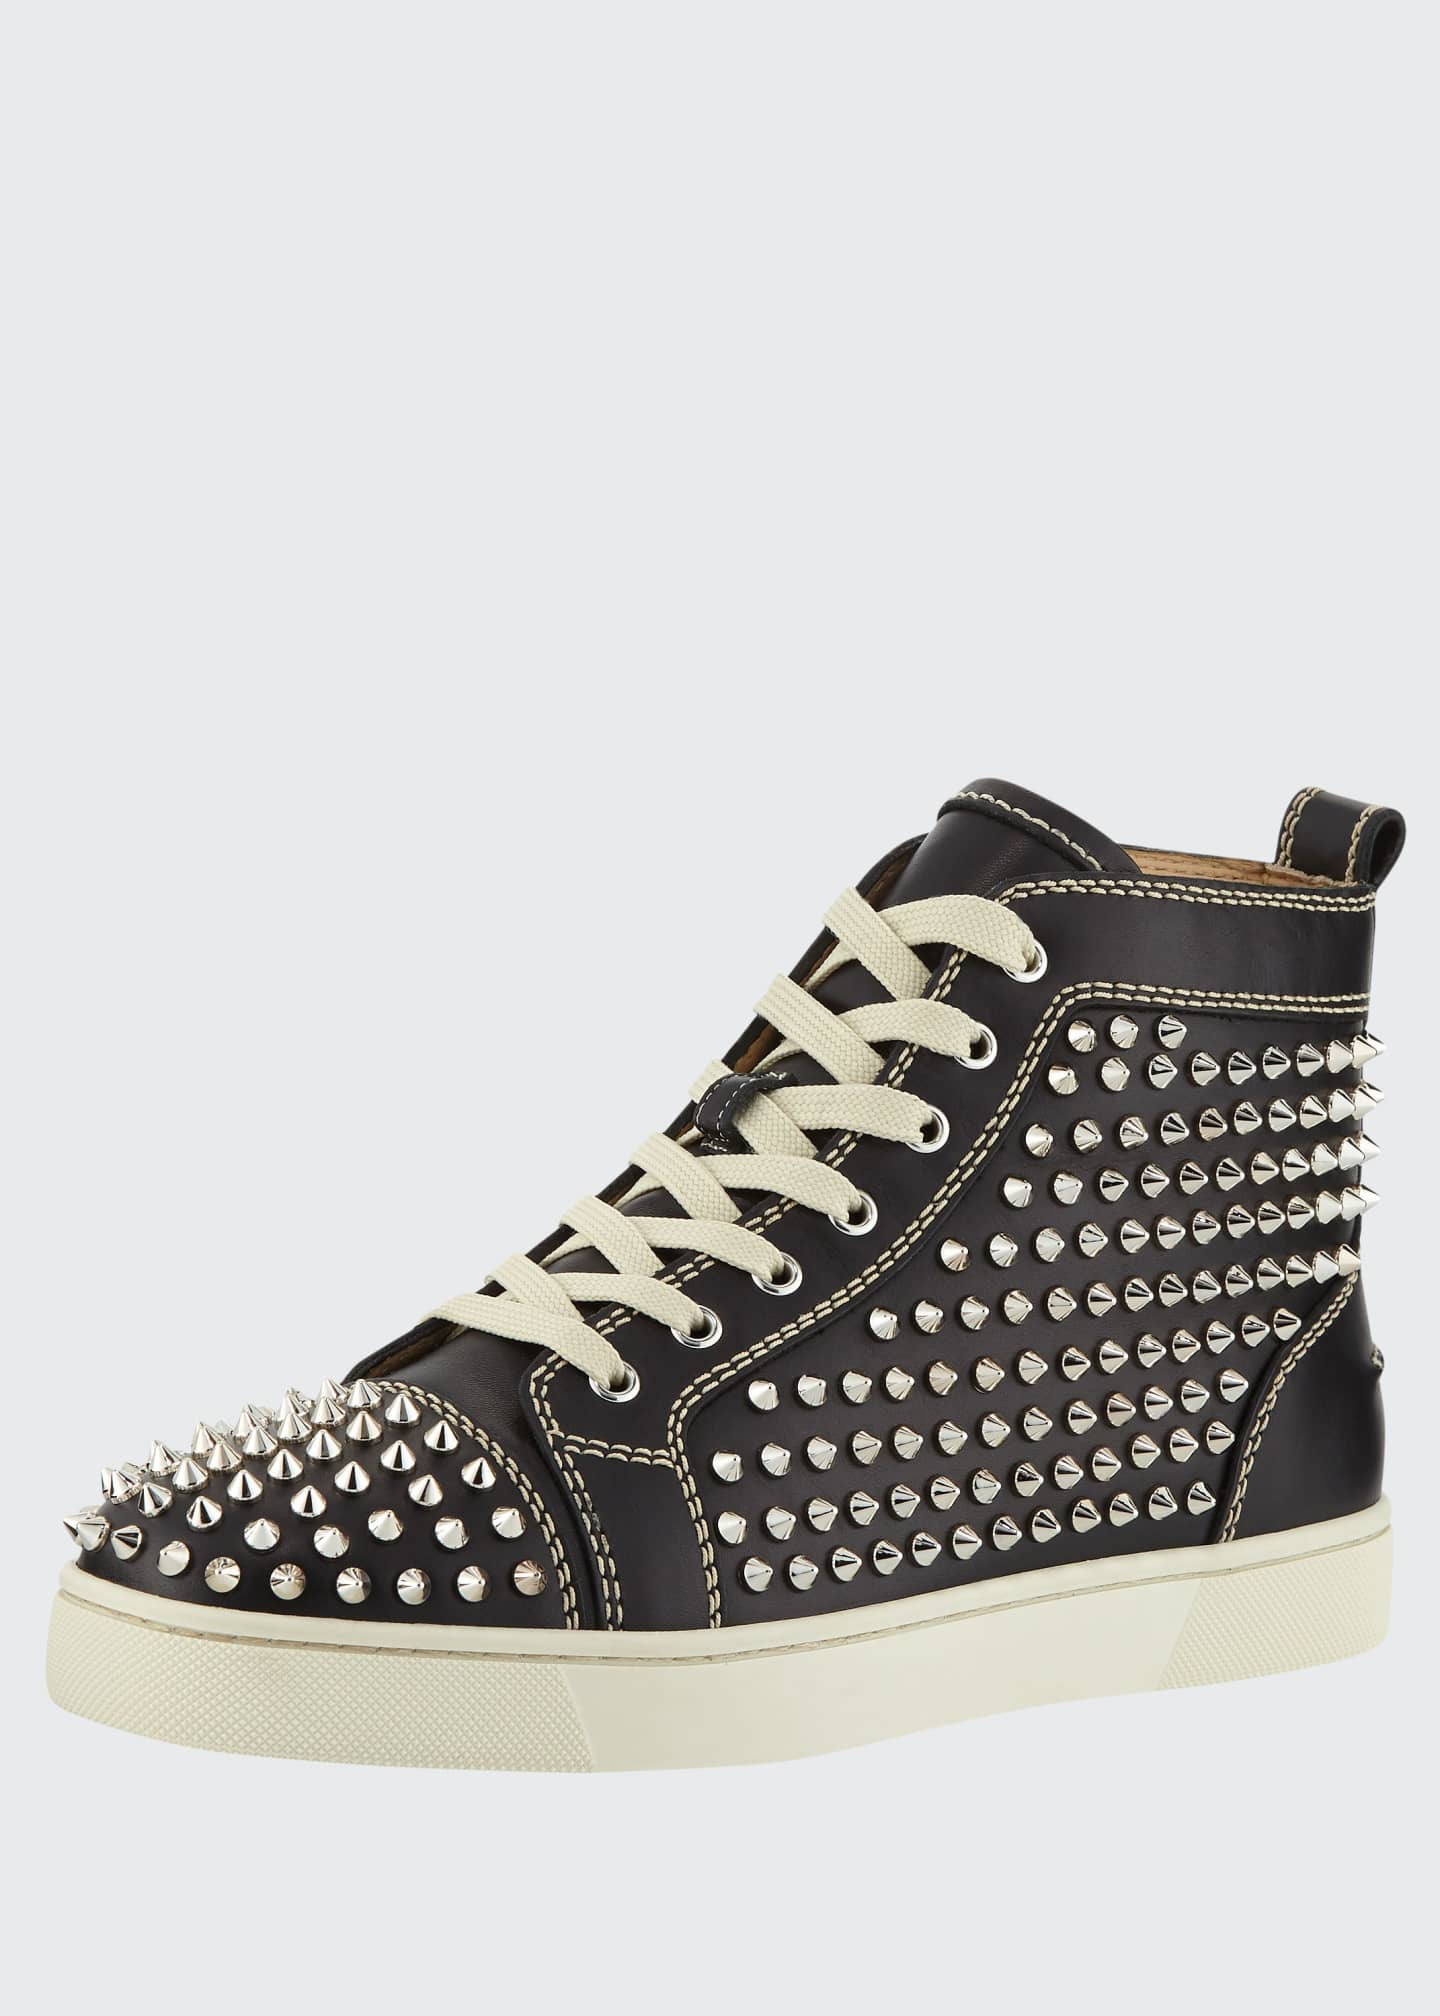 Image 1 of 4: Men's Louis Mid-Top Spiked Leather Sneakers